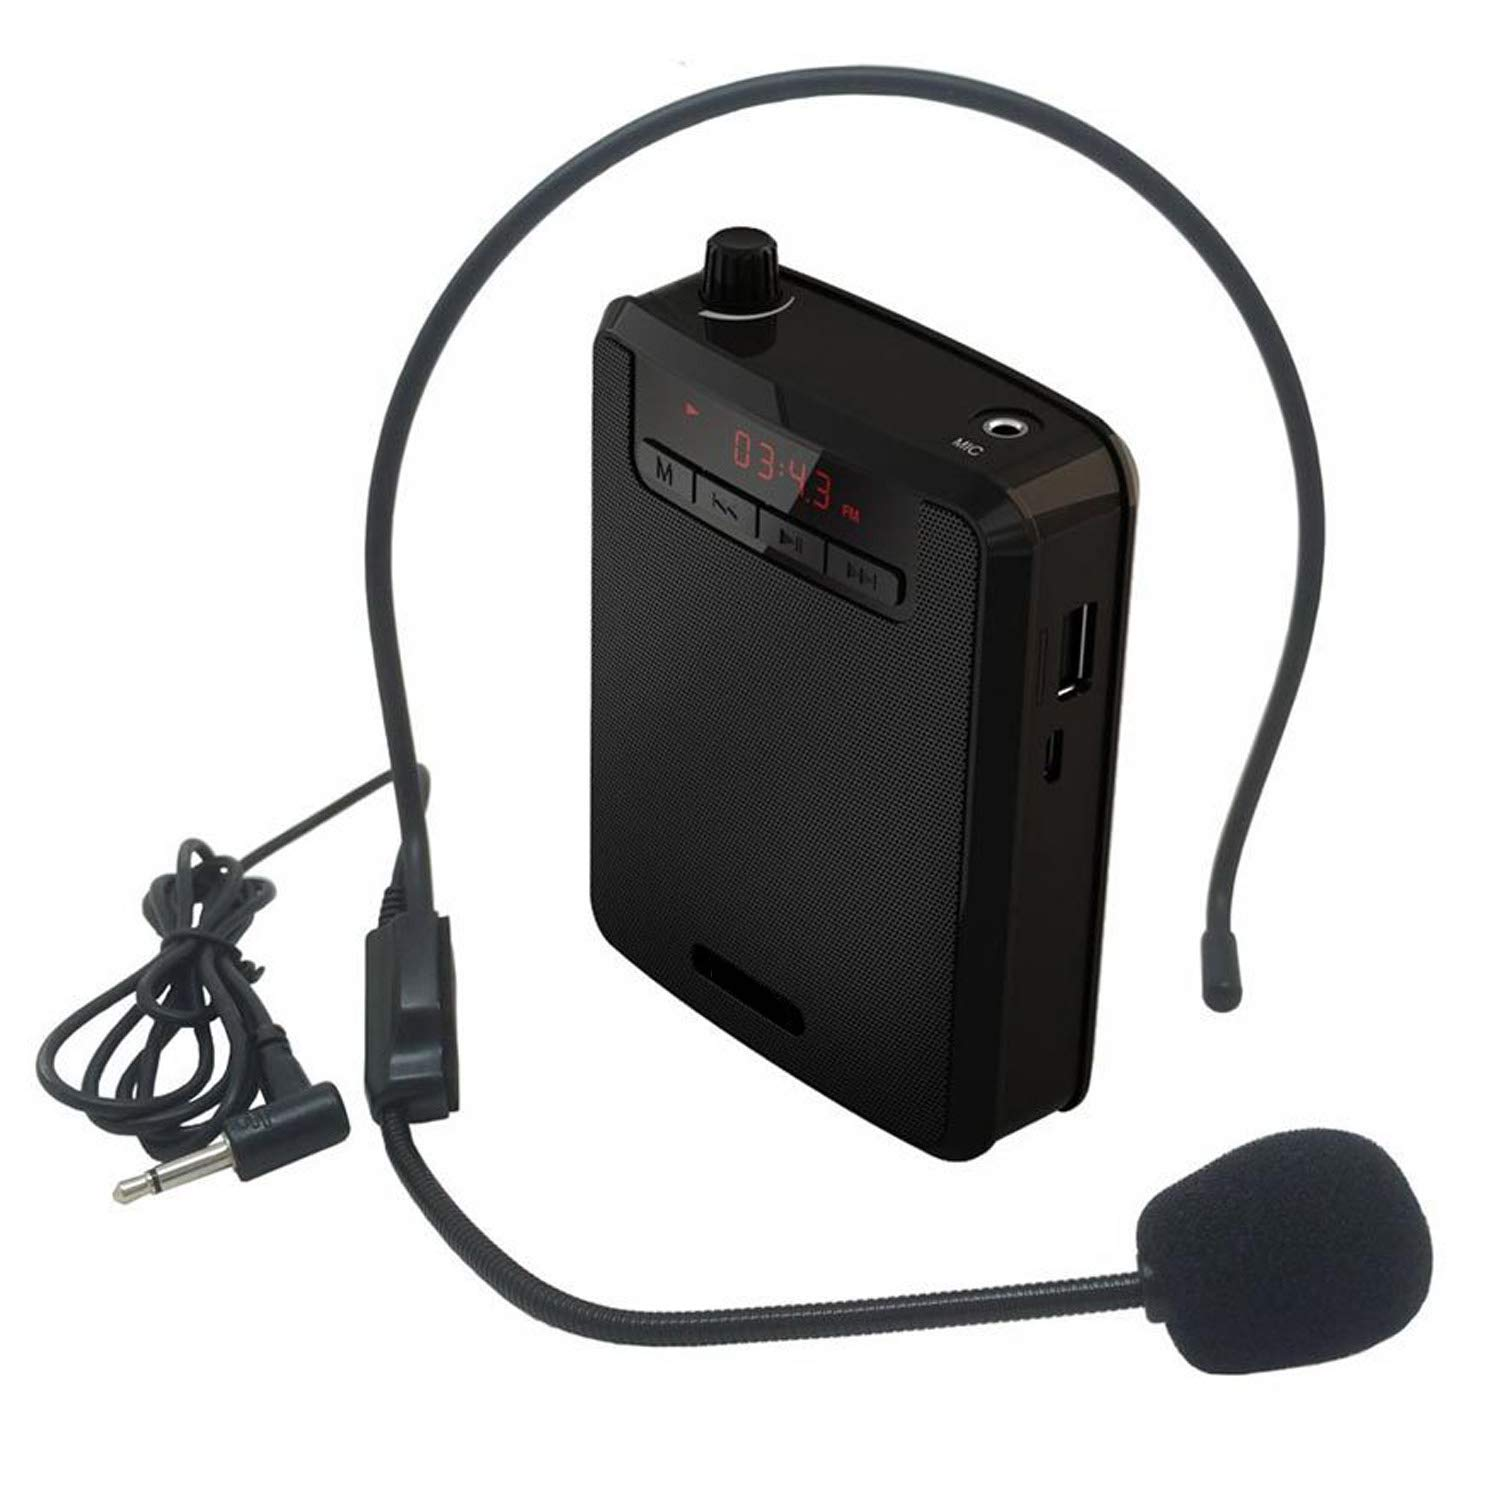 Portable Voice Amplifier Natural Stereo Sound Microphone Loudspeaker for Tour Guide Speech,FM Radio Function,Microphone with Earphone,Black